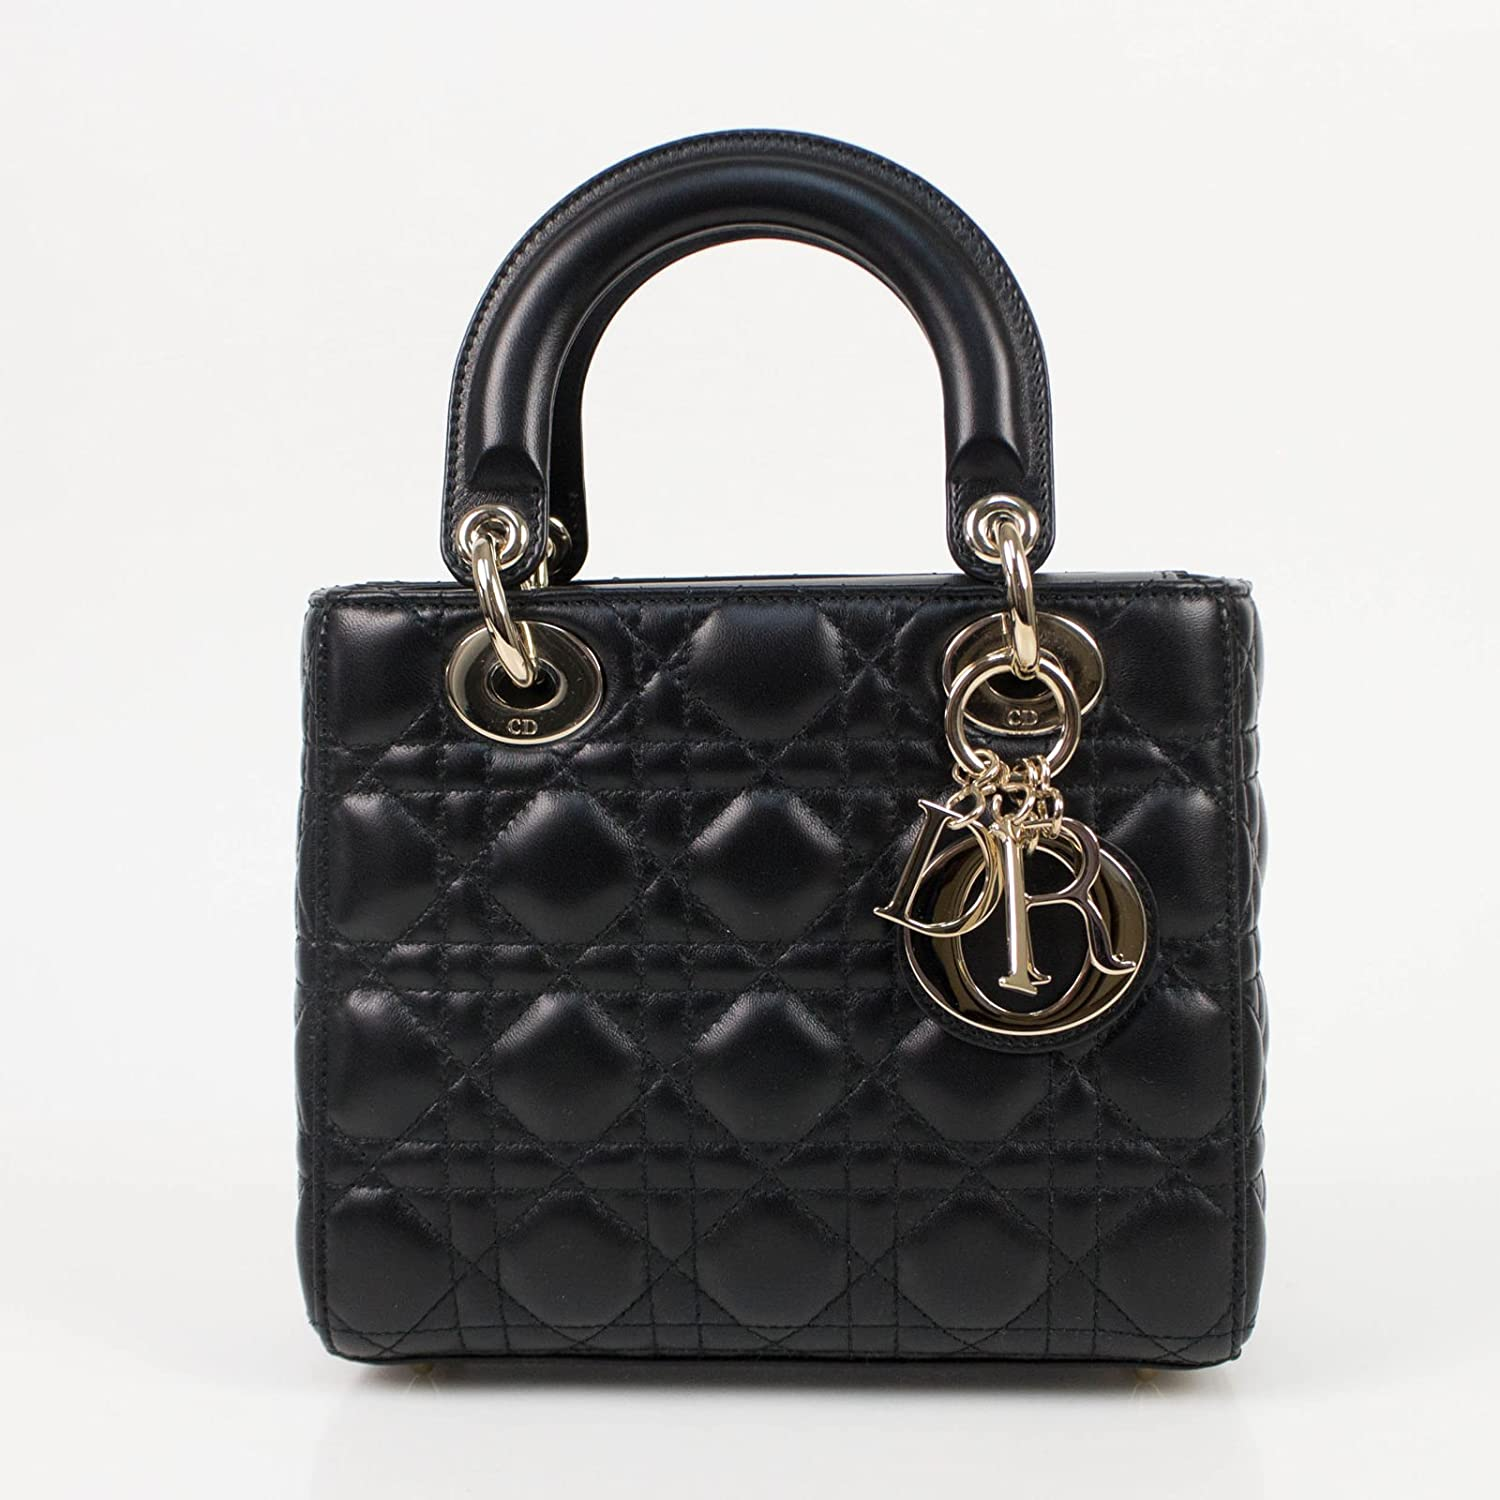 Amazon.com  Christian Dior Lady Dior Leather W Attachable Strap Mini Shoulder  Bag  Baby 25785a4a6644a